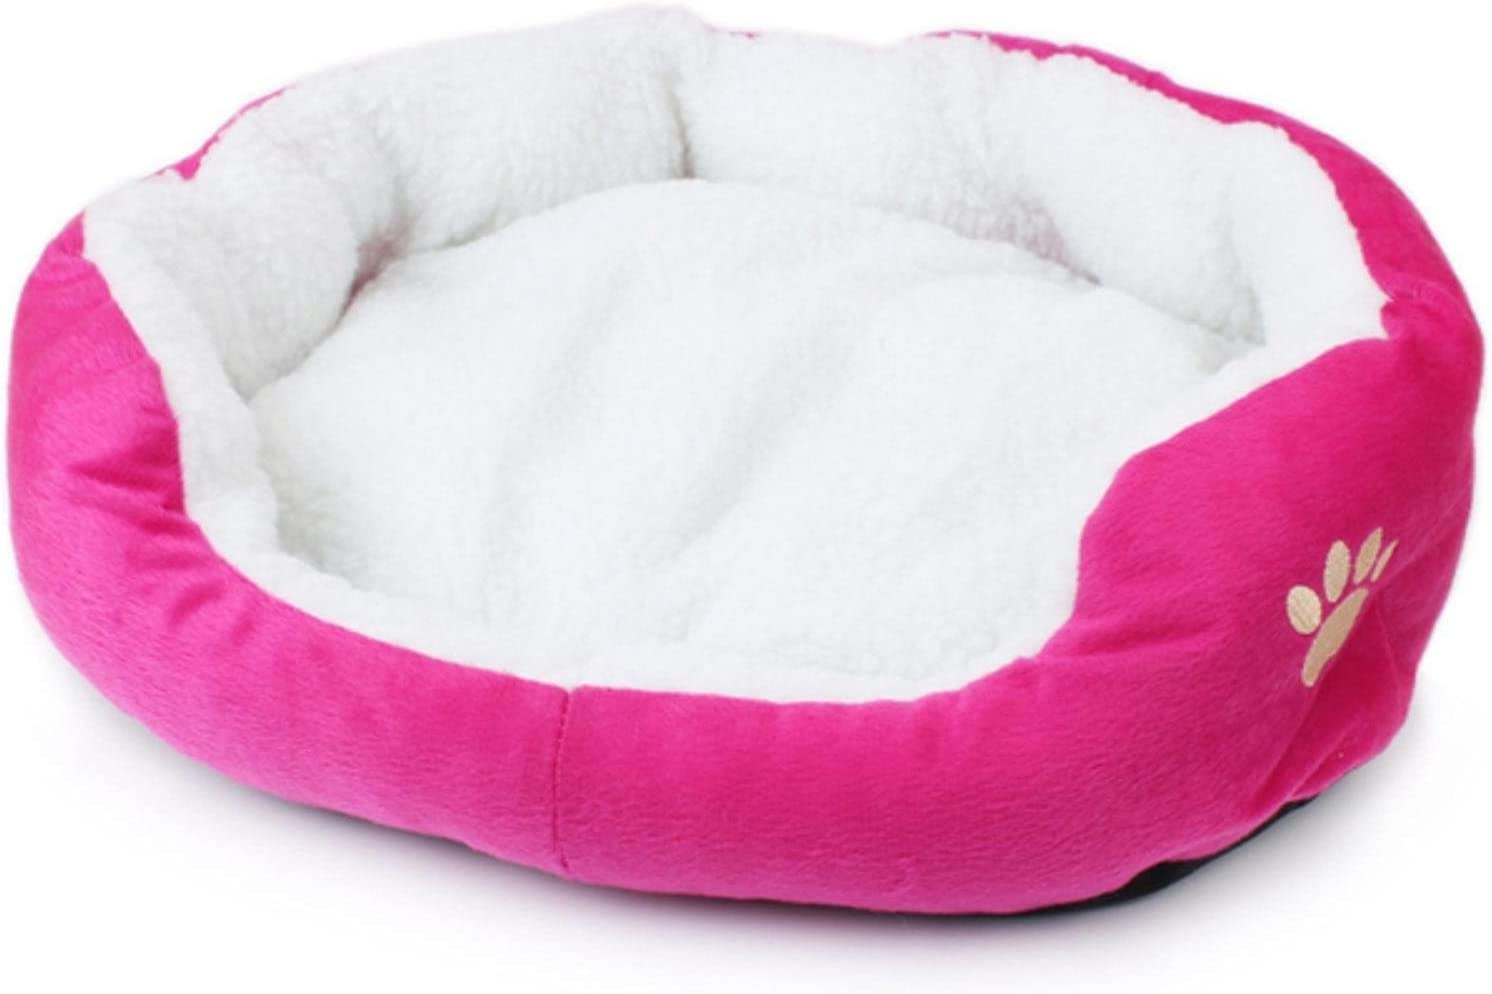 Max 65% OFF Madezz Cashmere pet Dog cat Home Cushion Los Angeles Mall Win Kennel Warm